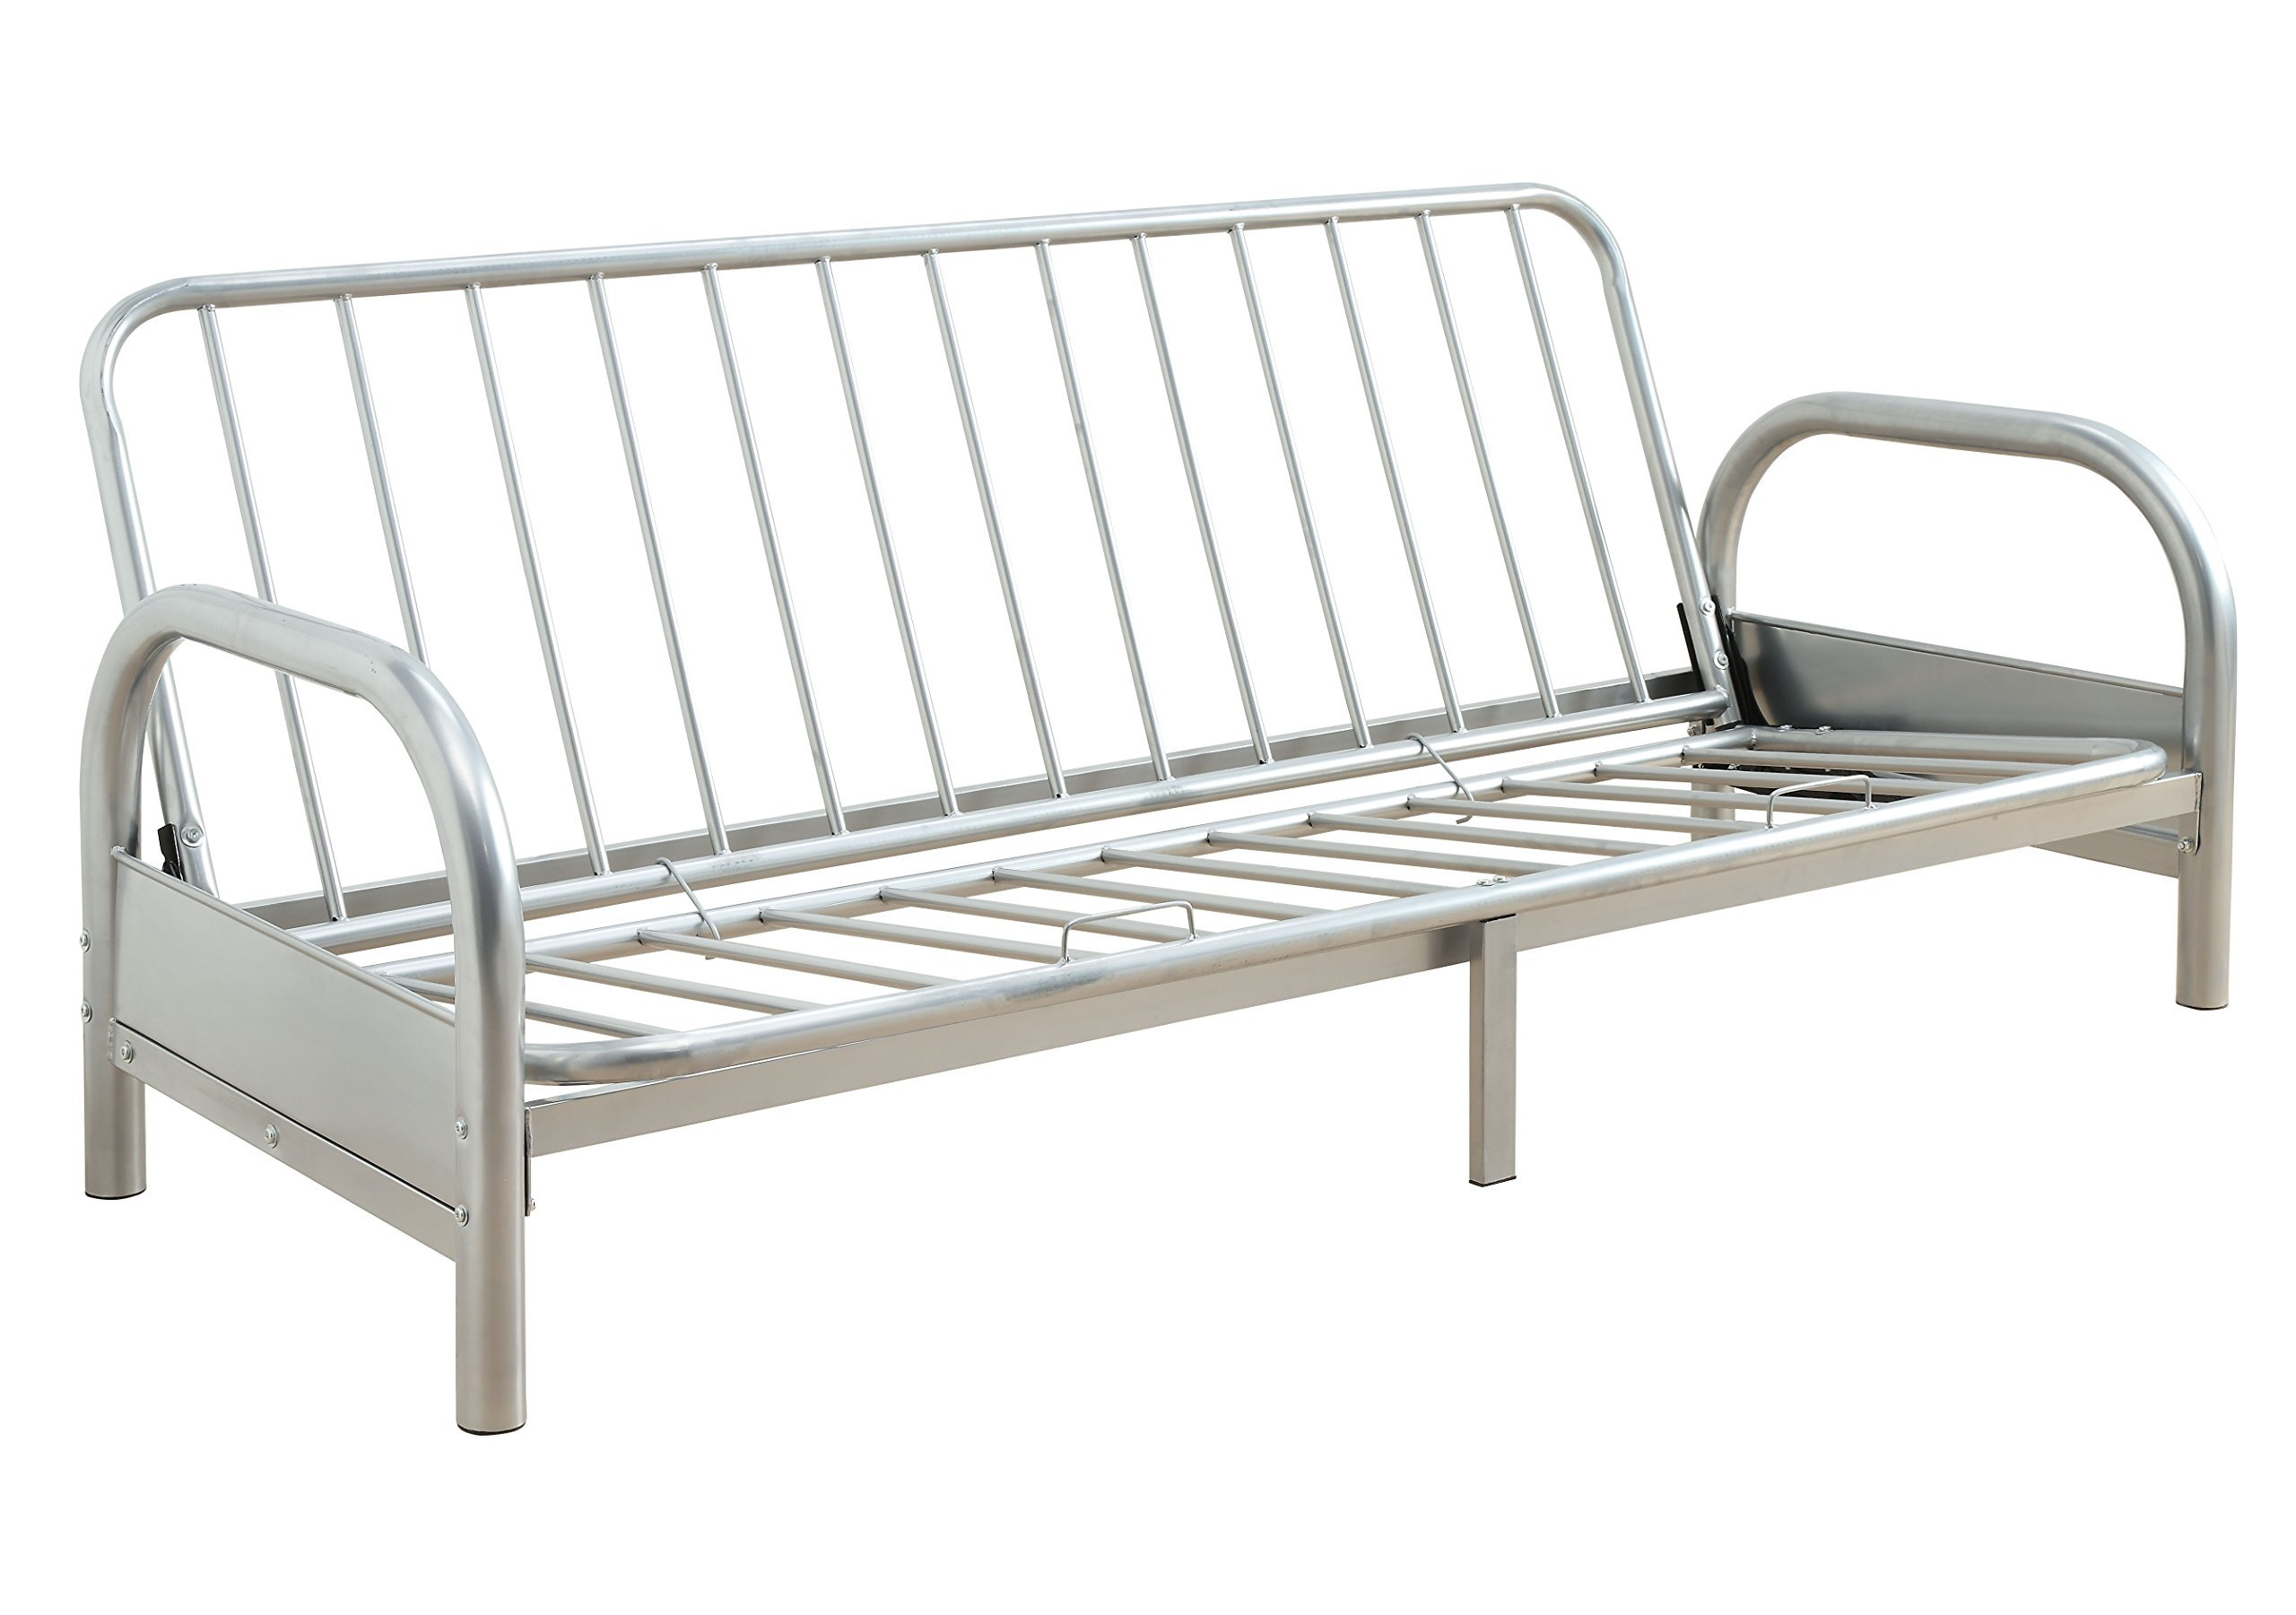 Acme Furniture 02172SI Alfonso Adjustable Sofa Frame, One Size, Silver by Acme Furniture